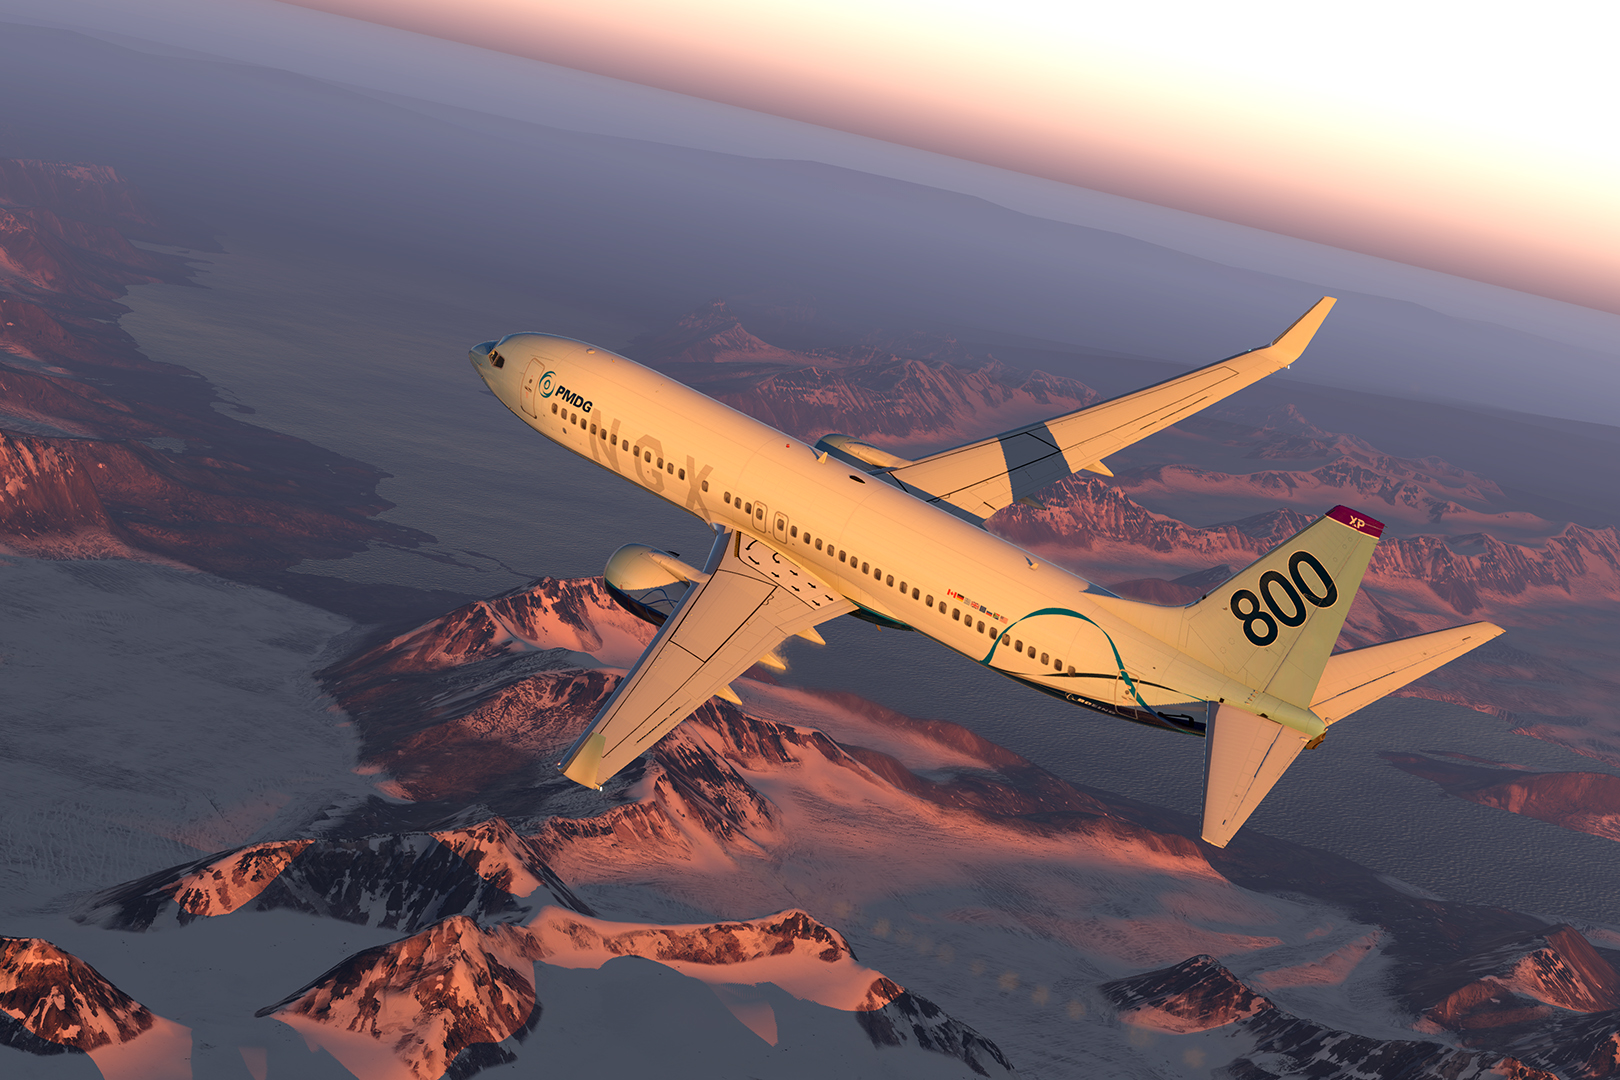 Opinion: Does PMDG Need X-Plane More Than X-Plane Needs PMDG